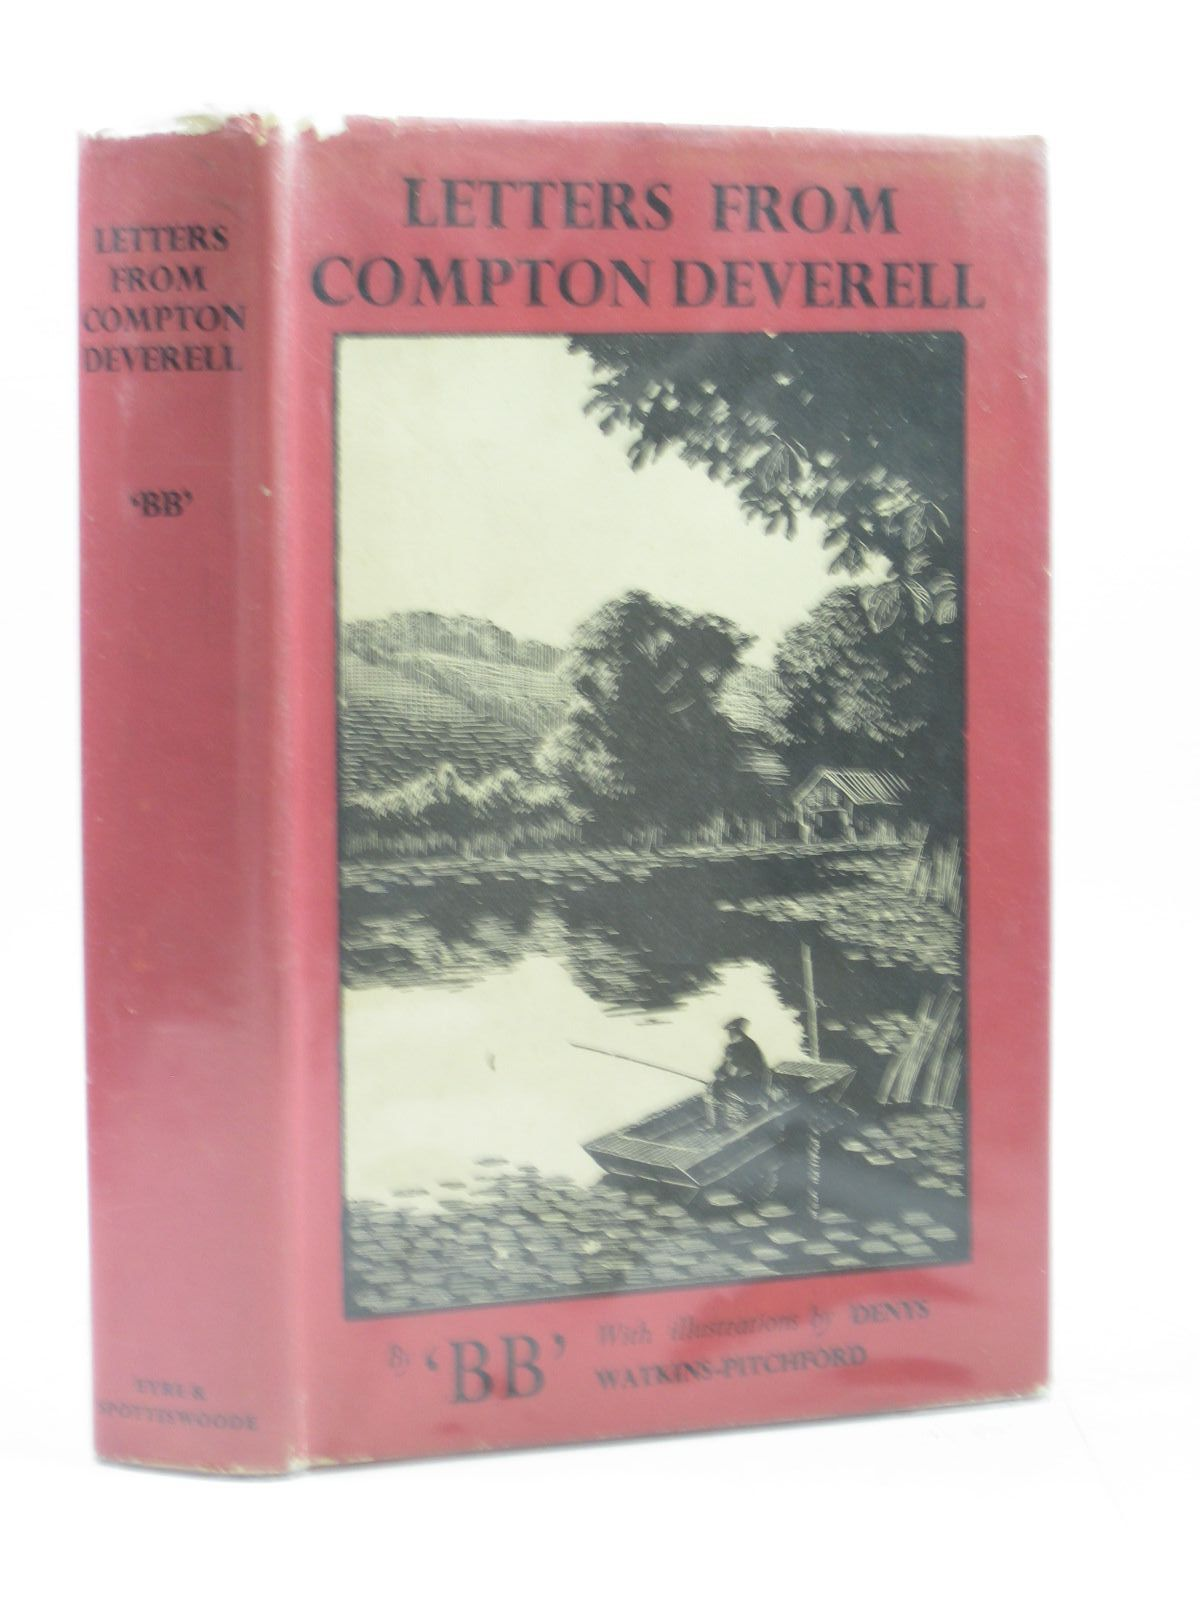 Photo of LETTERS FROM COMPTON DEVERELL written by BB, illustrated by BB, published by Eyre & Spottiswoode (STOCK CODE: 1313753)  for sale by Stella & Rose's Books